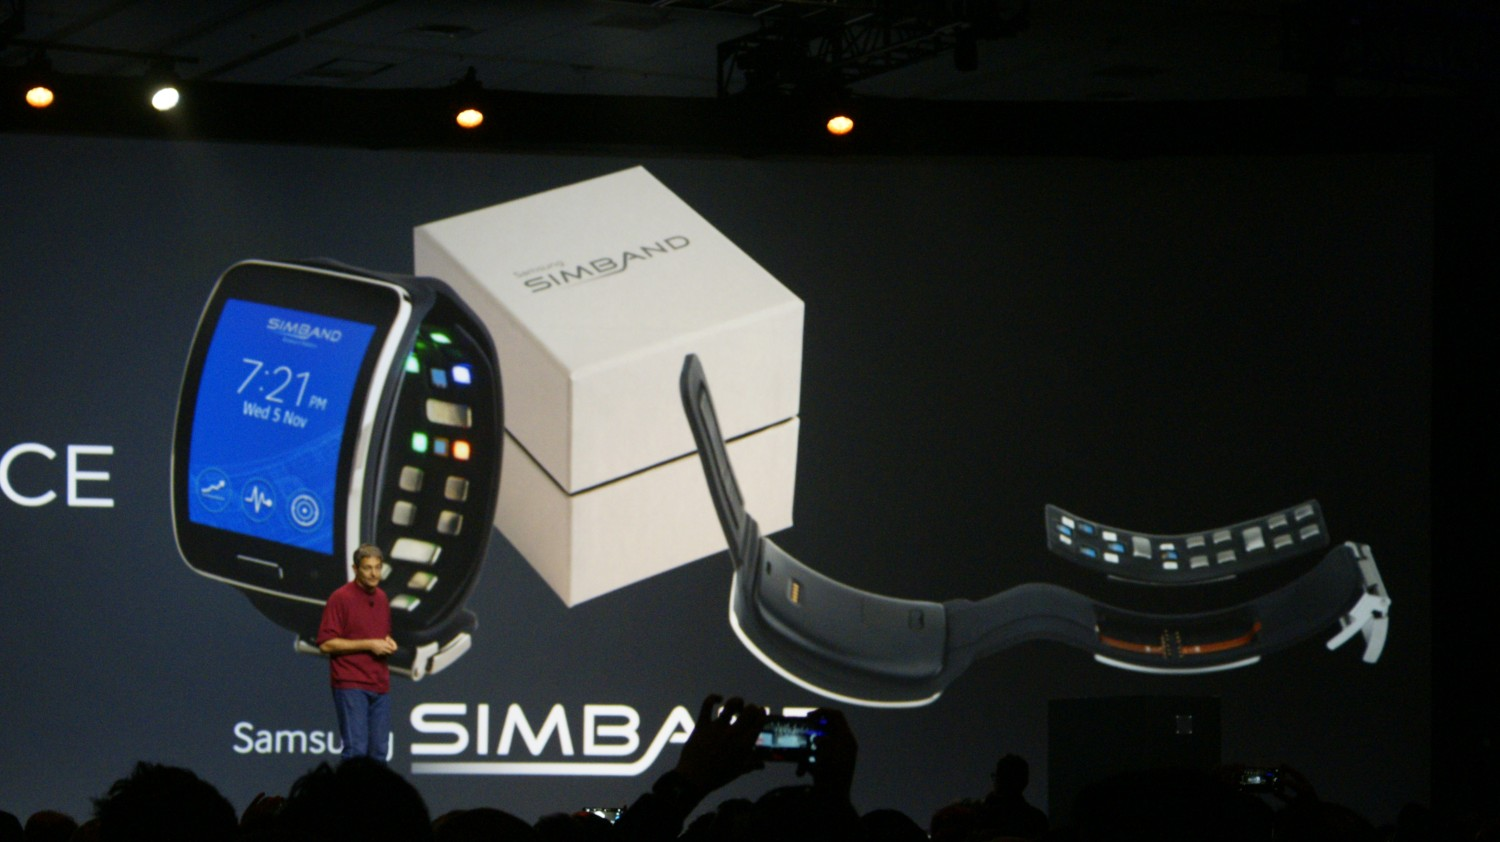 Samsung opens up SIMBAND wearable to developers